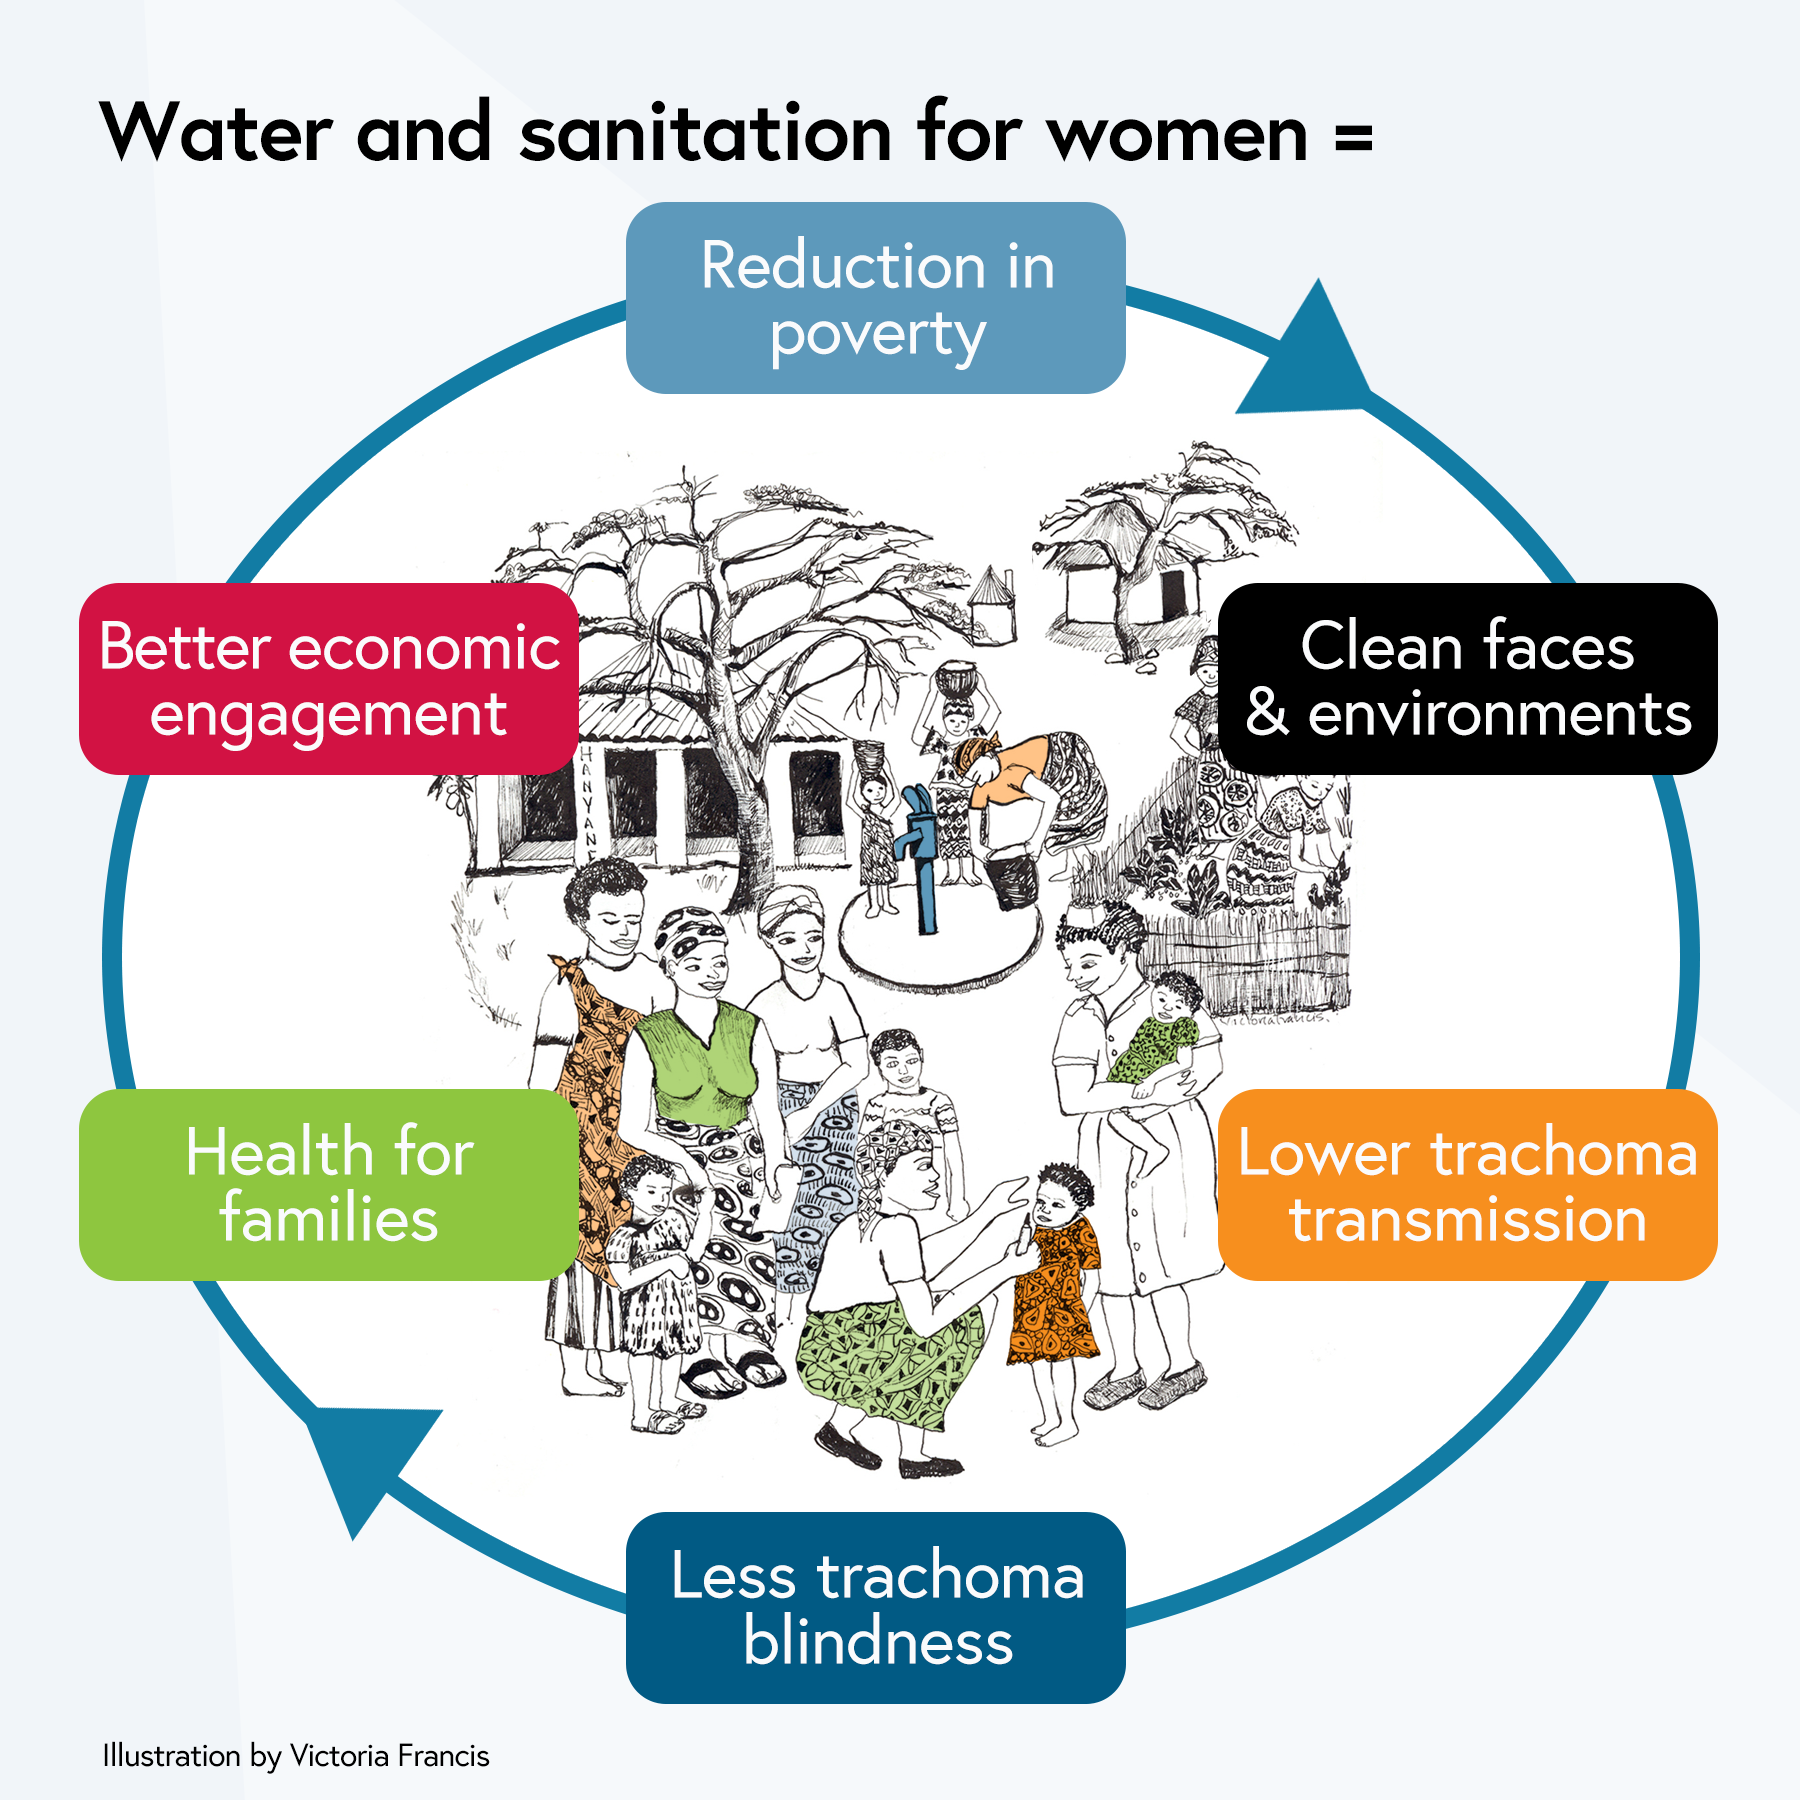 Water and sanitation for women comes from: poverty reduction, clean faces & environment, lower trachoma transmission and blindness, health for families and better economic engagement